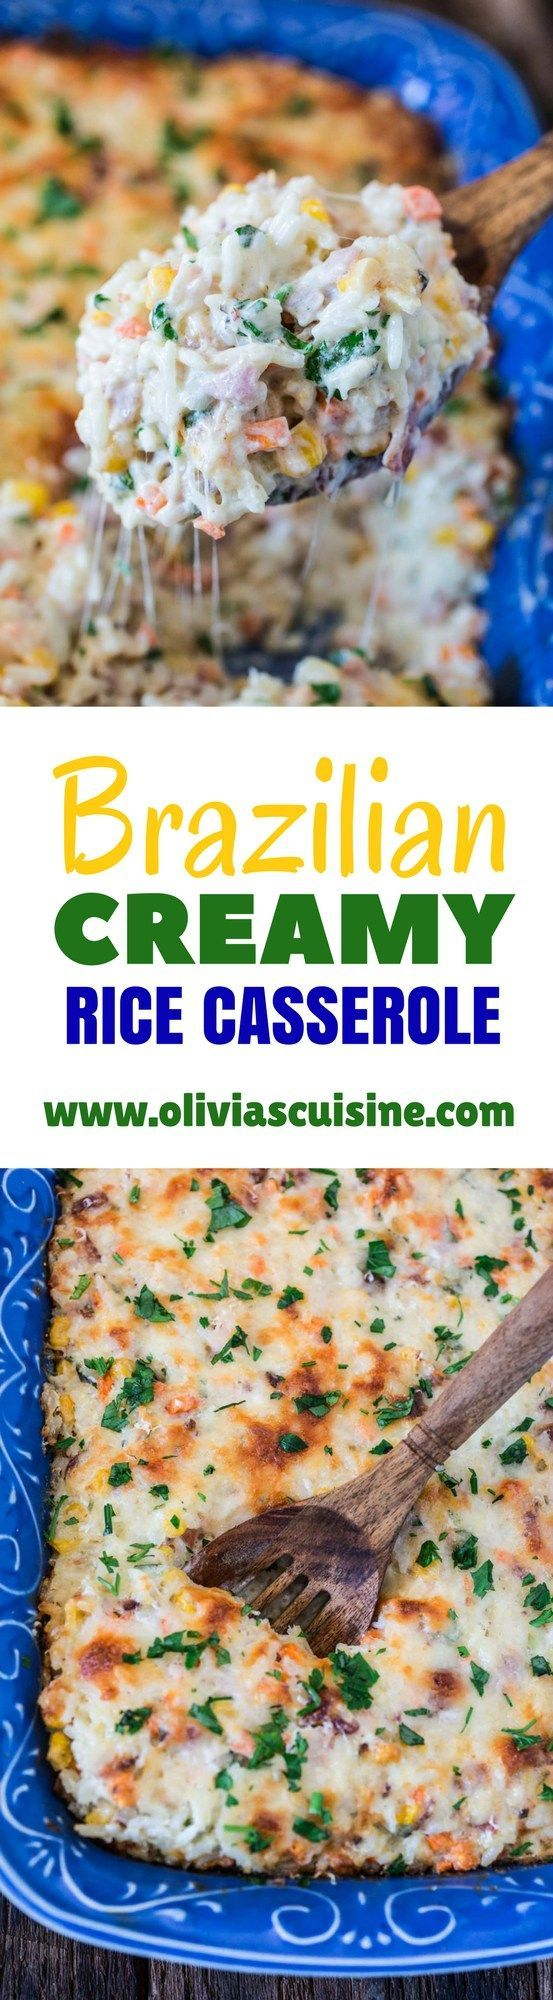 Brazilian Creamy Rice Casserole   www.oliviascuisine.com   This Brazilian Creamy Rice Casserole is not only delicious but VERY easy and quick to prepare. It is ready in 20 minutes and is a great way to use up the leftovers in your fridge! (In partnership with @successrice. ) #Back2SchoolSuccess #ad